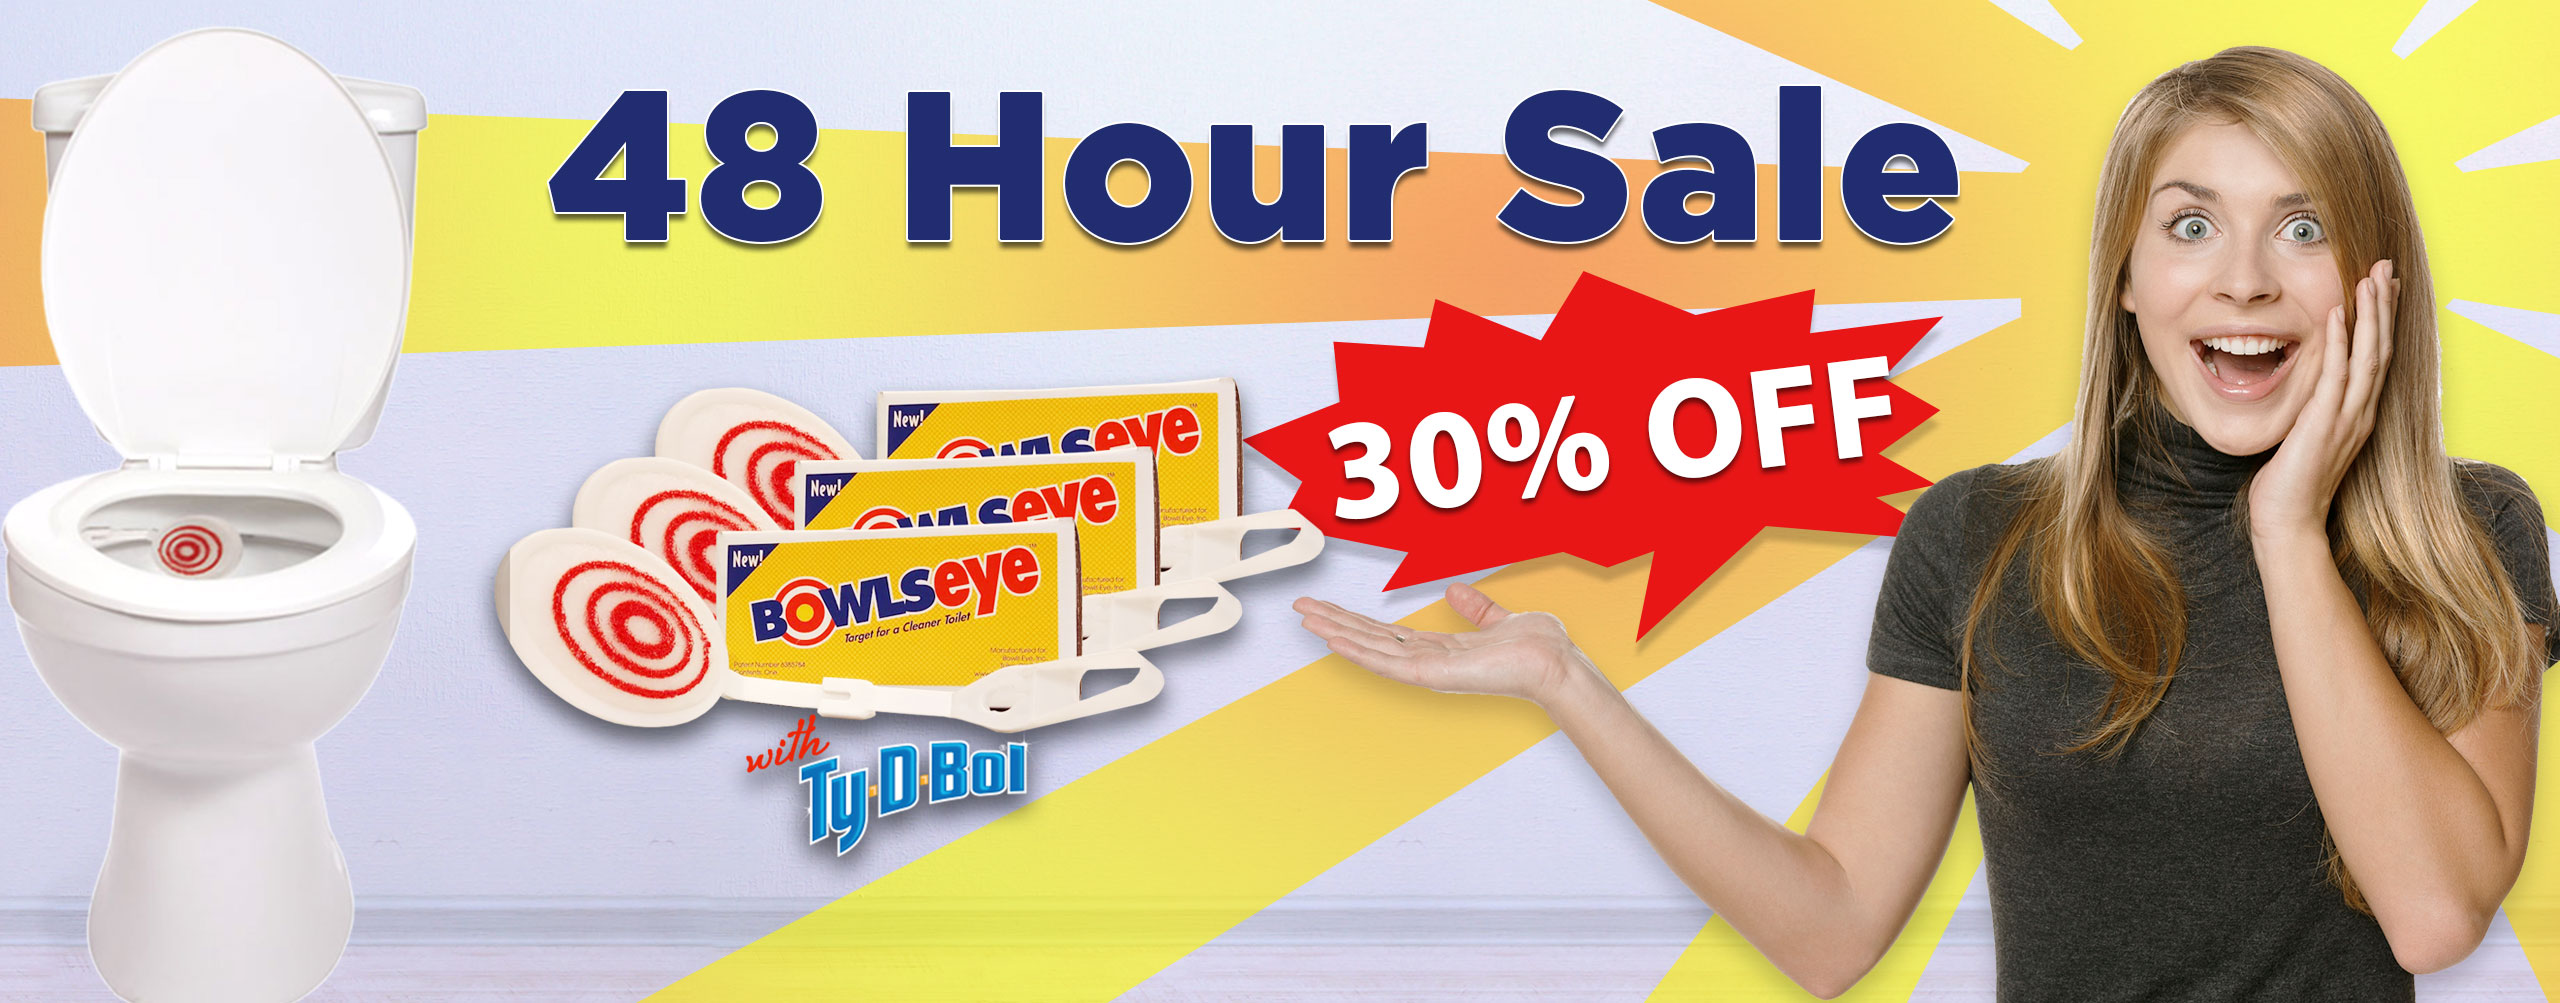 48 Hour Sale Banner